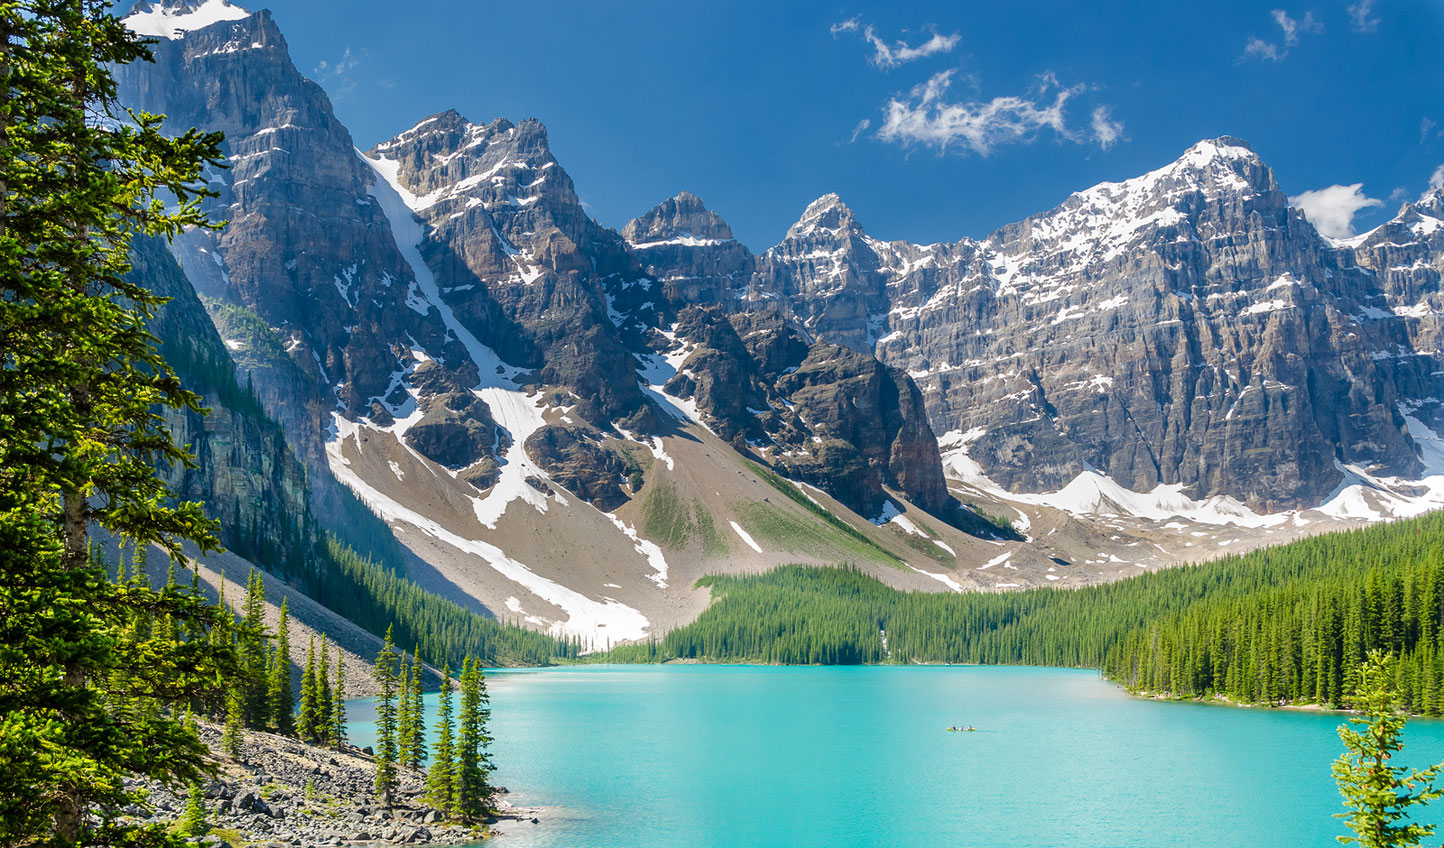 Find yourself confronted by majestic mountain scenes